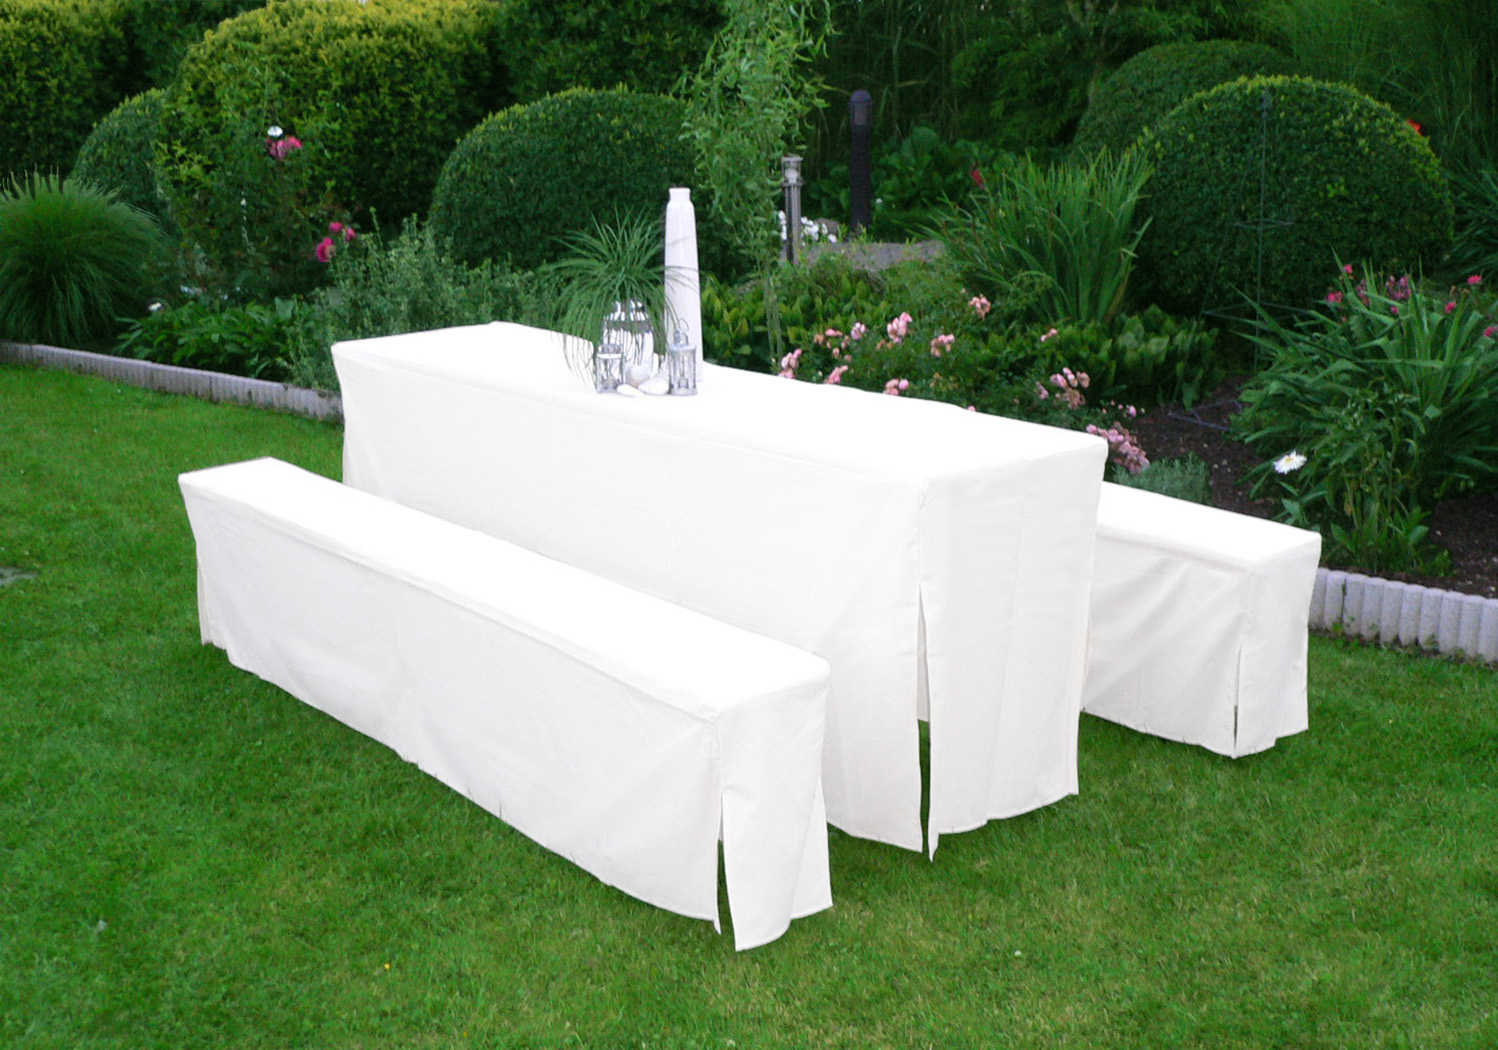 bierbankhussen hussen festzeltgarnitur bierzeltgarnitur hussenset 50cm weiss 4050747202300 ebay. Black Bedroom Furniture Sets. Home Design Ideas